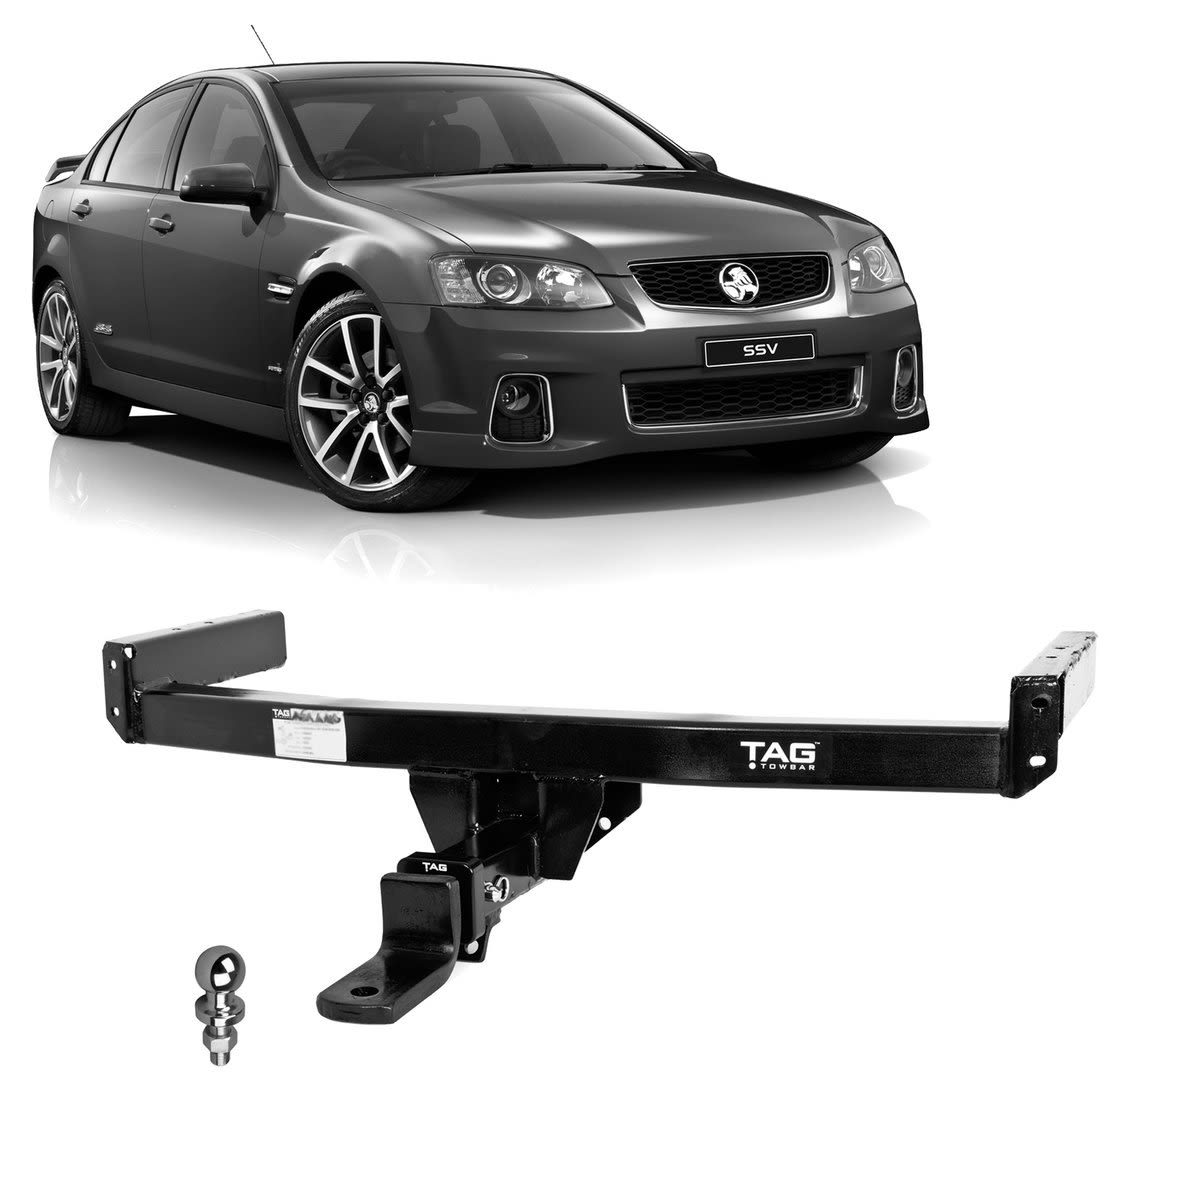 TAG Heavy Duty Towbar to suit Holden Commodore (01/2006 - 10/2017)